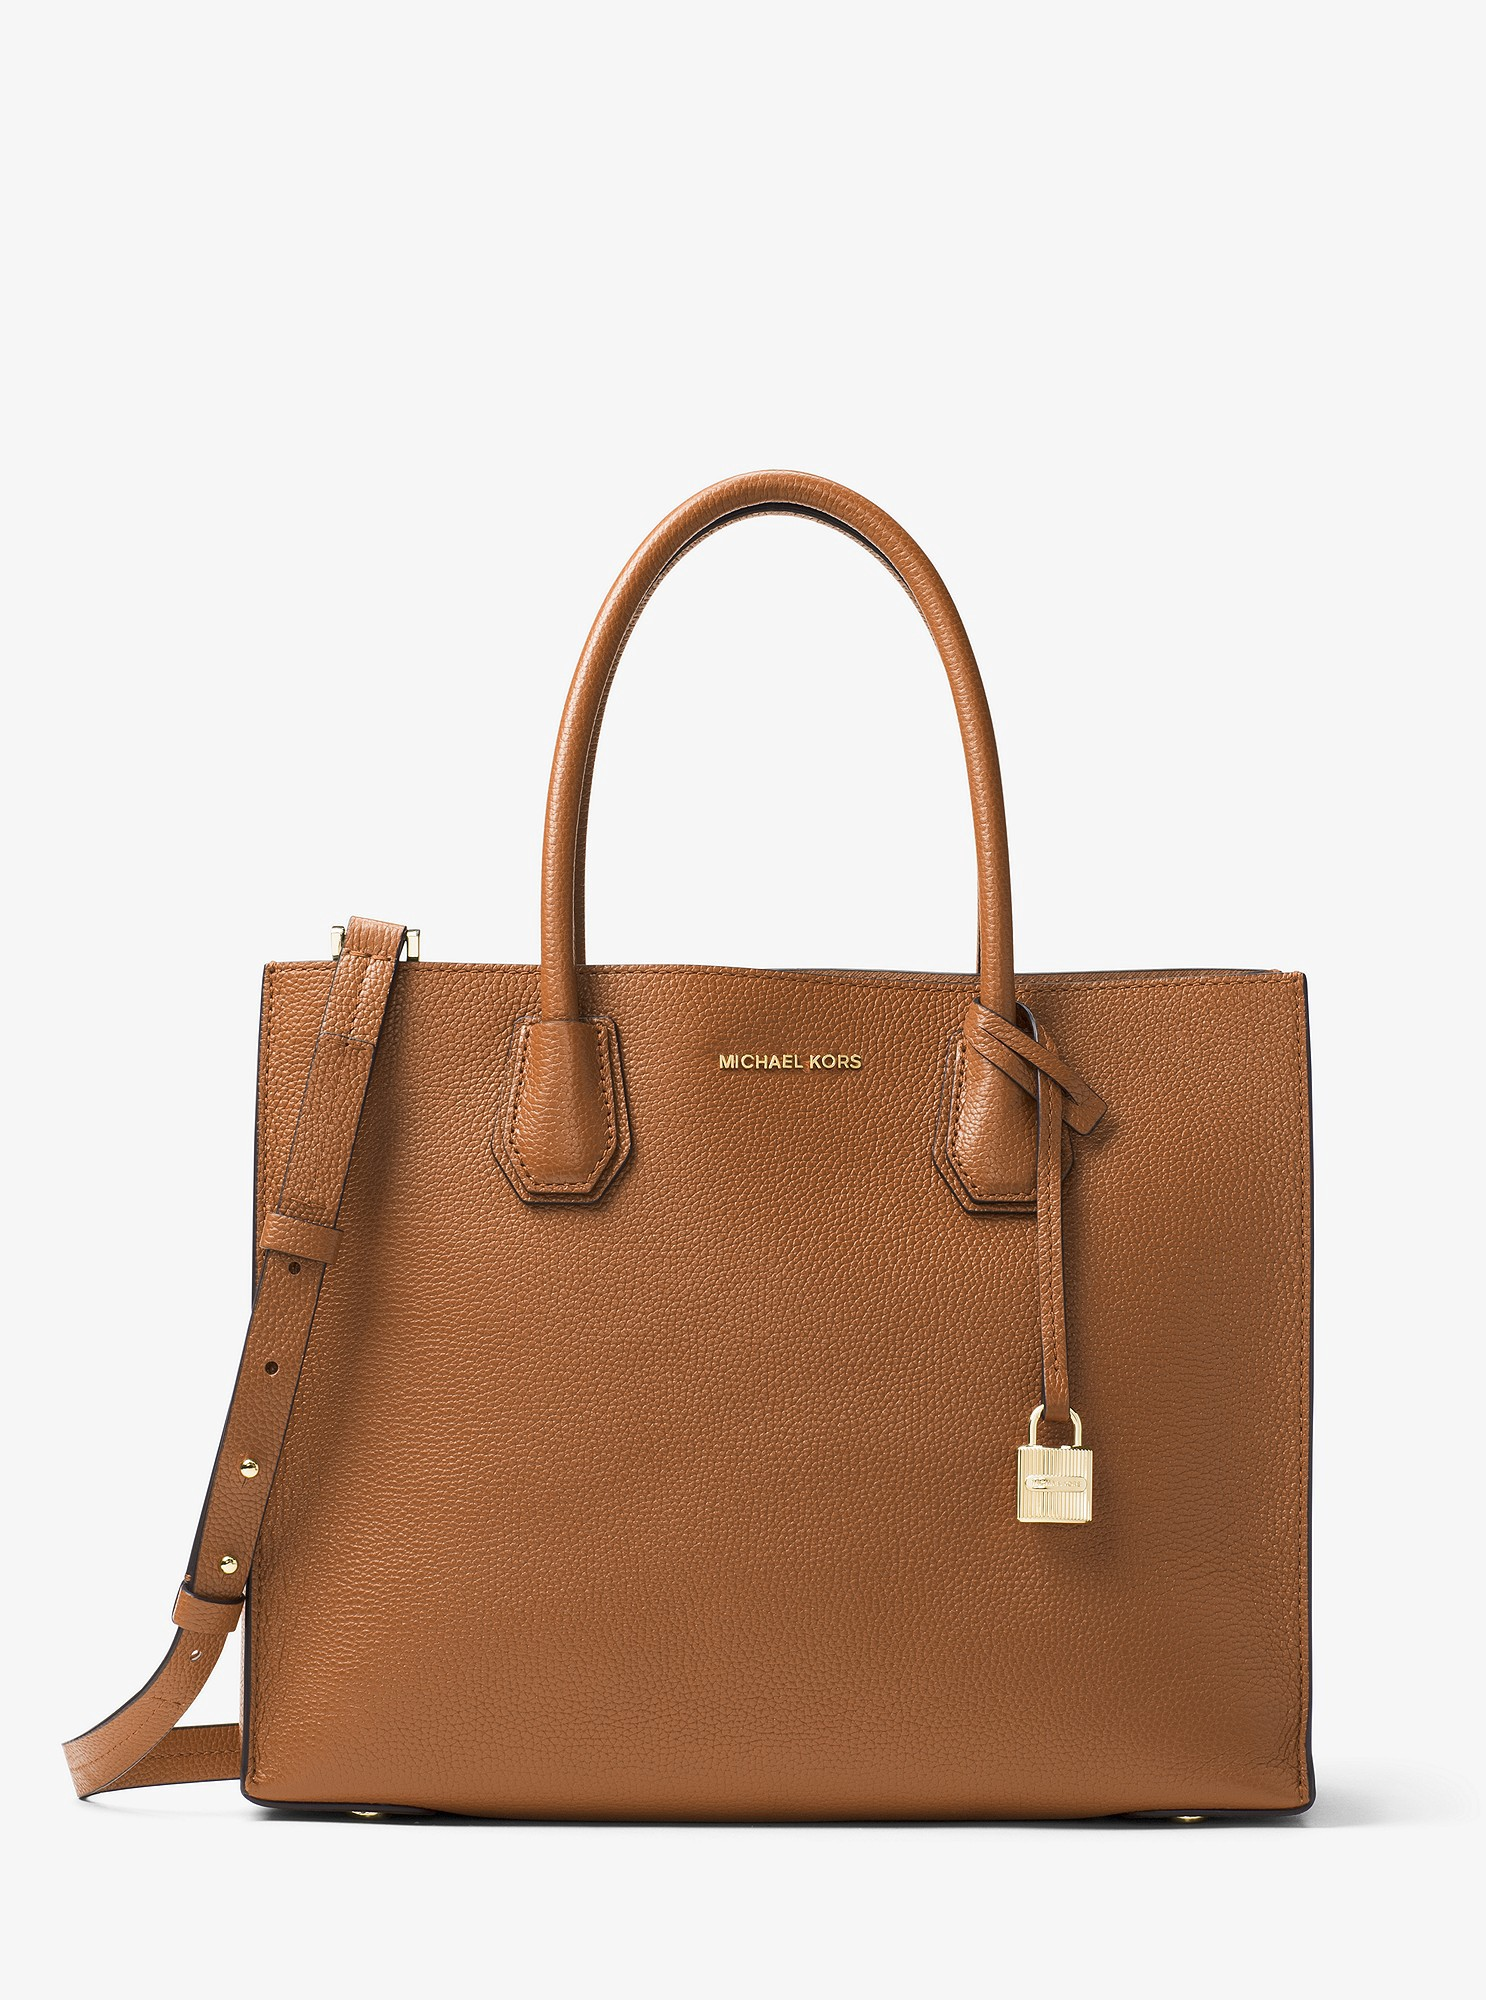 fdd652bebd9fbc Mercer Large Leather Tote by Michael Kors | Products | Michael kors ...